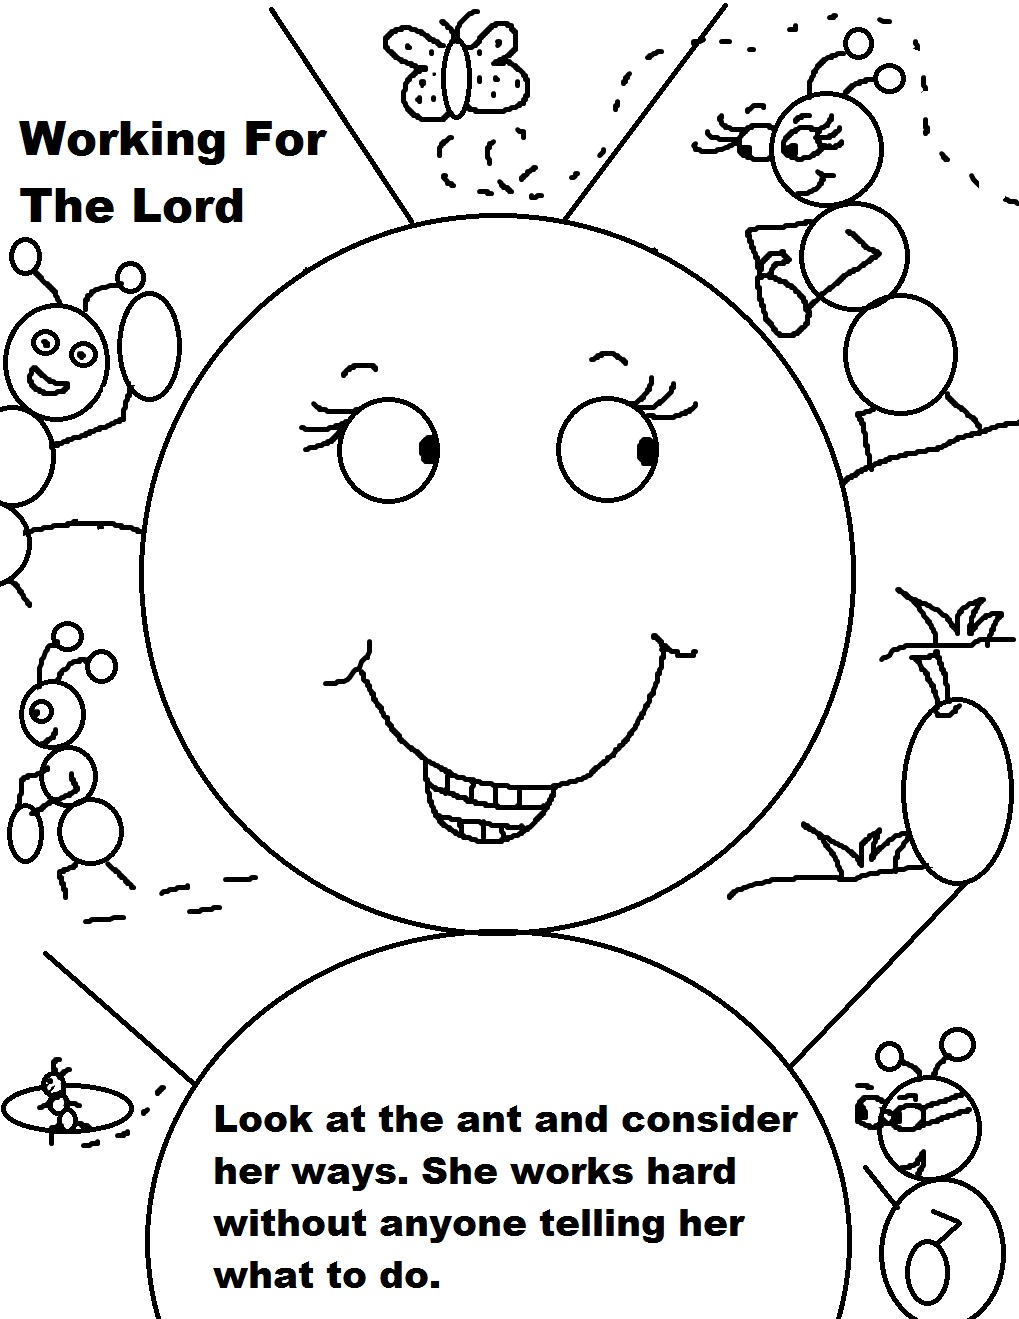 Free Bible Coloring Pages Creative Sunday School Ideas - free sunday school coloring pages